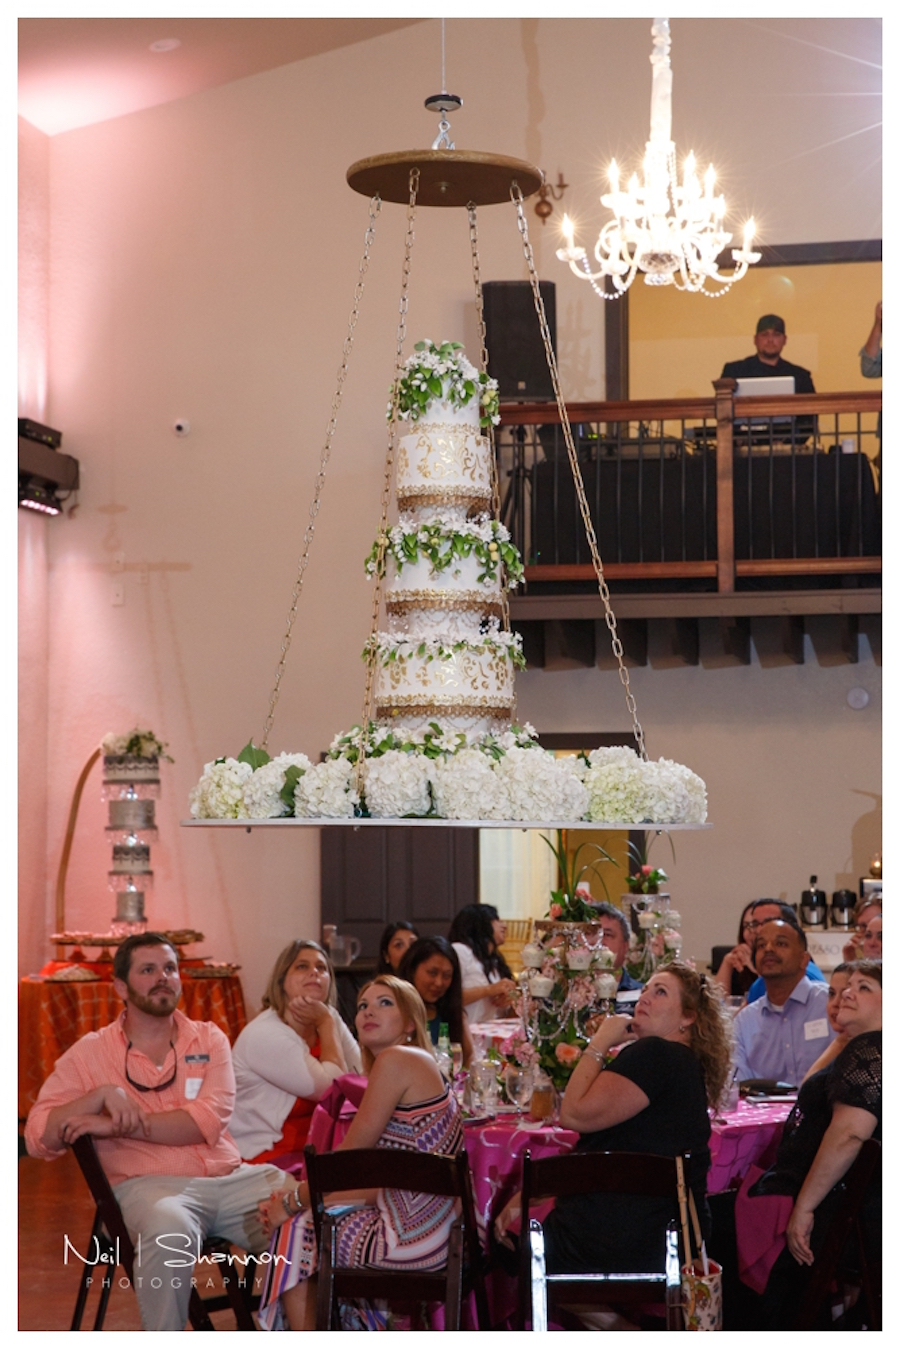 7-Tier White and Gold Round Hanging Suspended Wedding Cake with Greenery | Sarasota Wedding Cake and Dessert Baker The Cake Zone